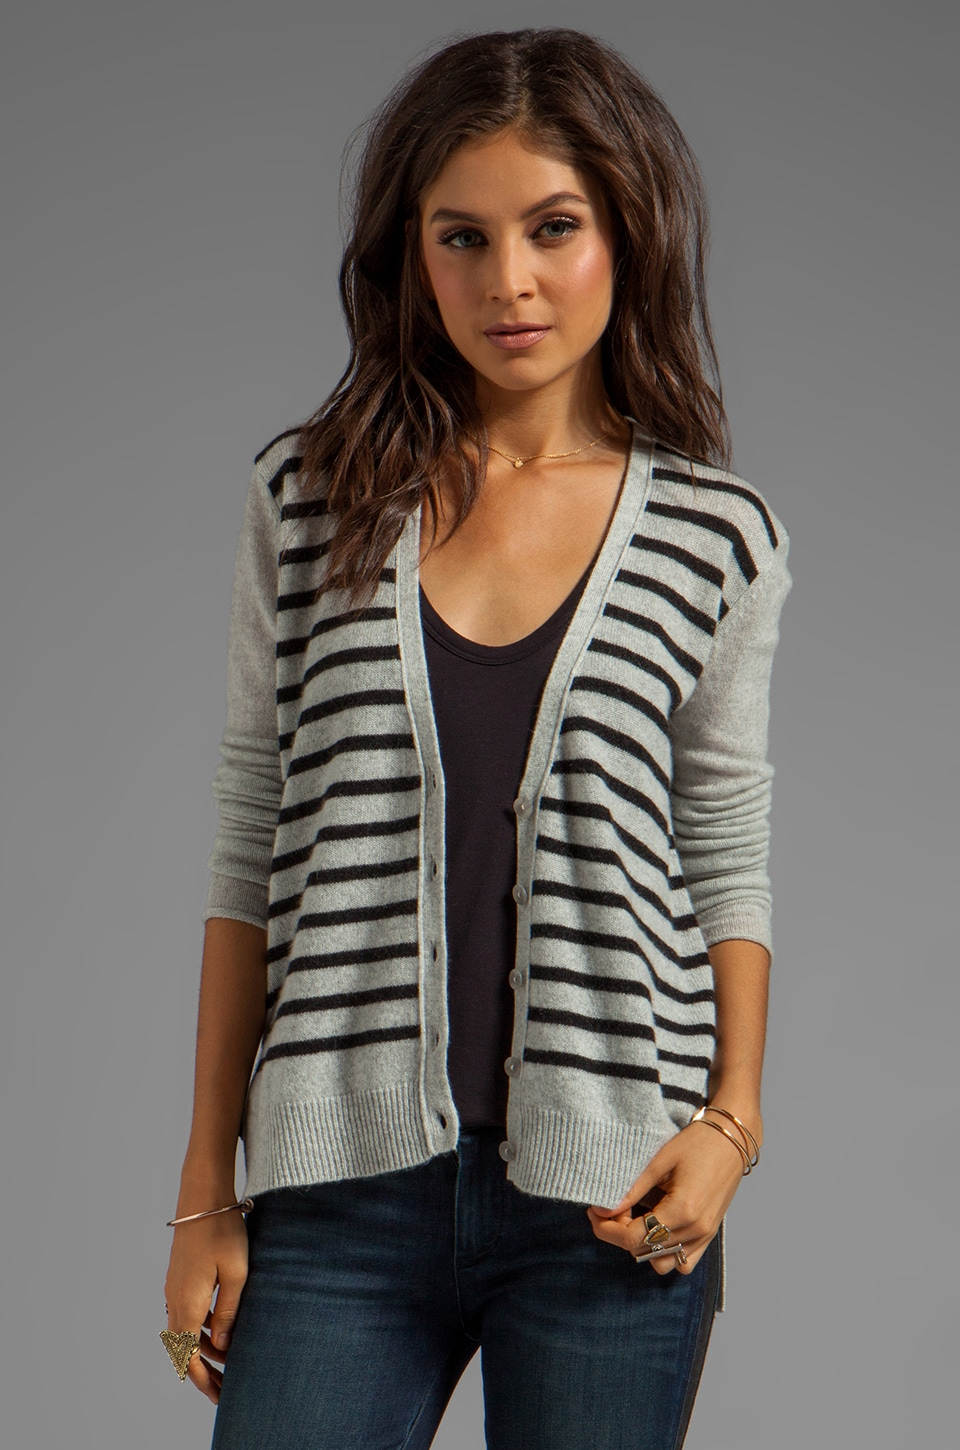 DUFFY Cashmere Cardigan in Silver/Charcoal